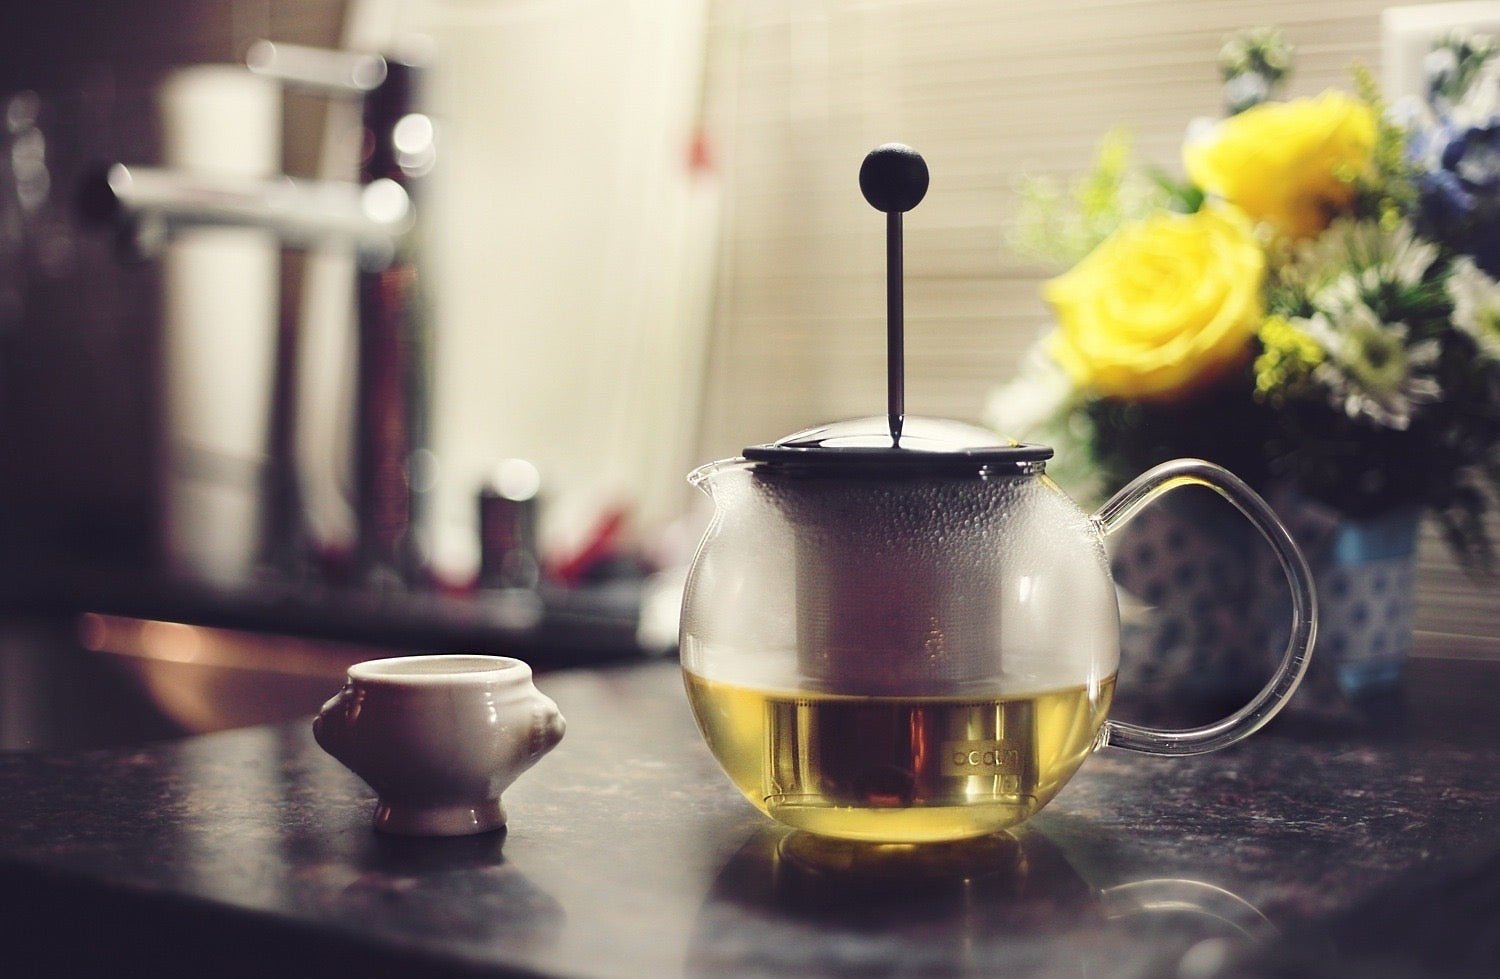 How To Combat Stress by Emptying a Kitchen Drawer. Image of a tea pot